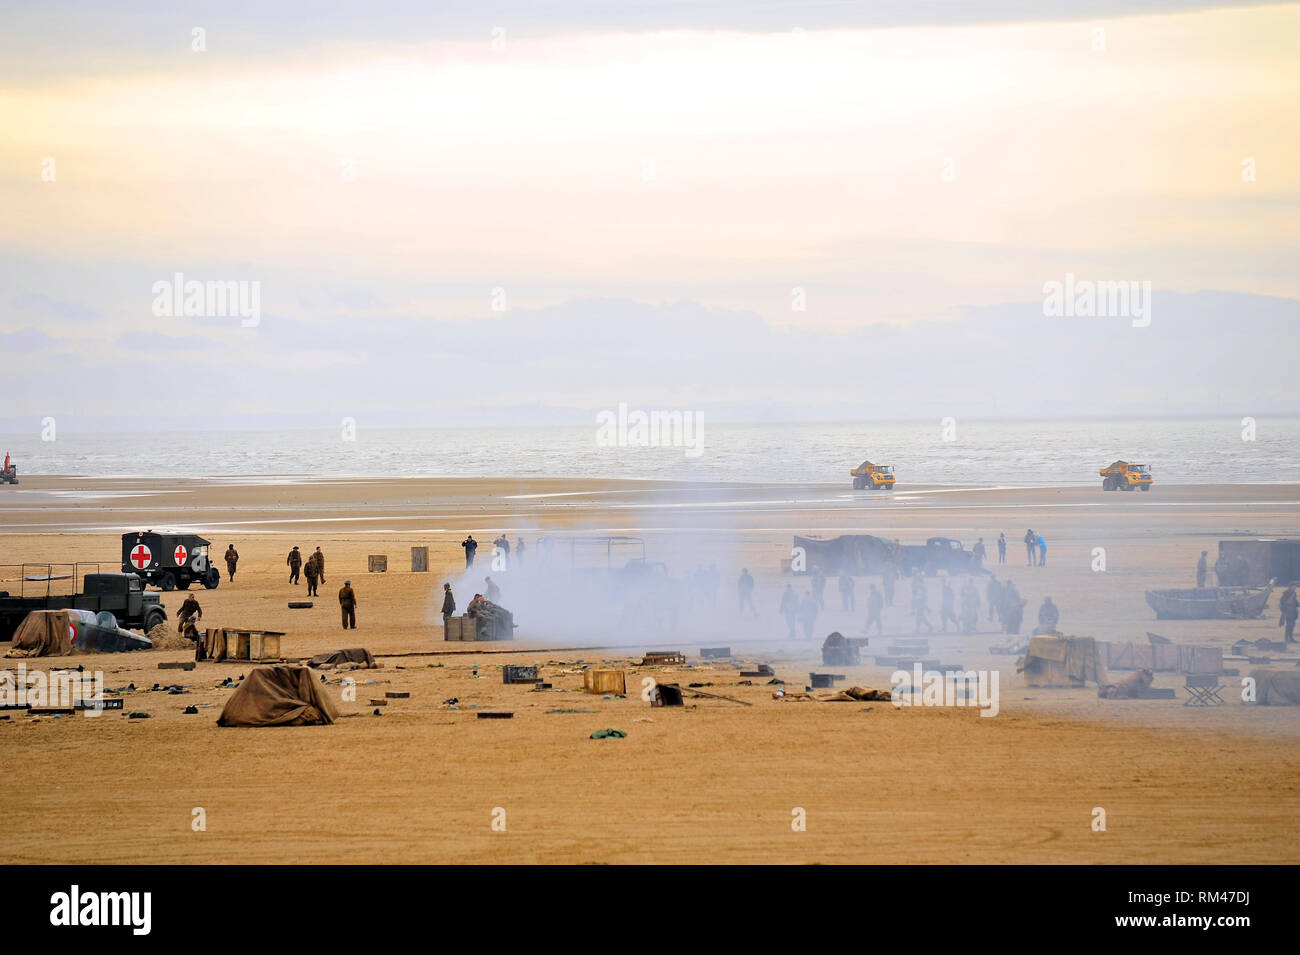 St Annes,Lancashire,UK. 13th Febuary 2019. BBC television War drama World on Fire,is filmed on St Annes beach,Lancashire. Production staff,actors and vehicles were gathered on the wide expanse of beach for the making of the epic story set during the second World War. Kev Walsh/Alamy Live News - Stock Image